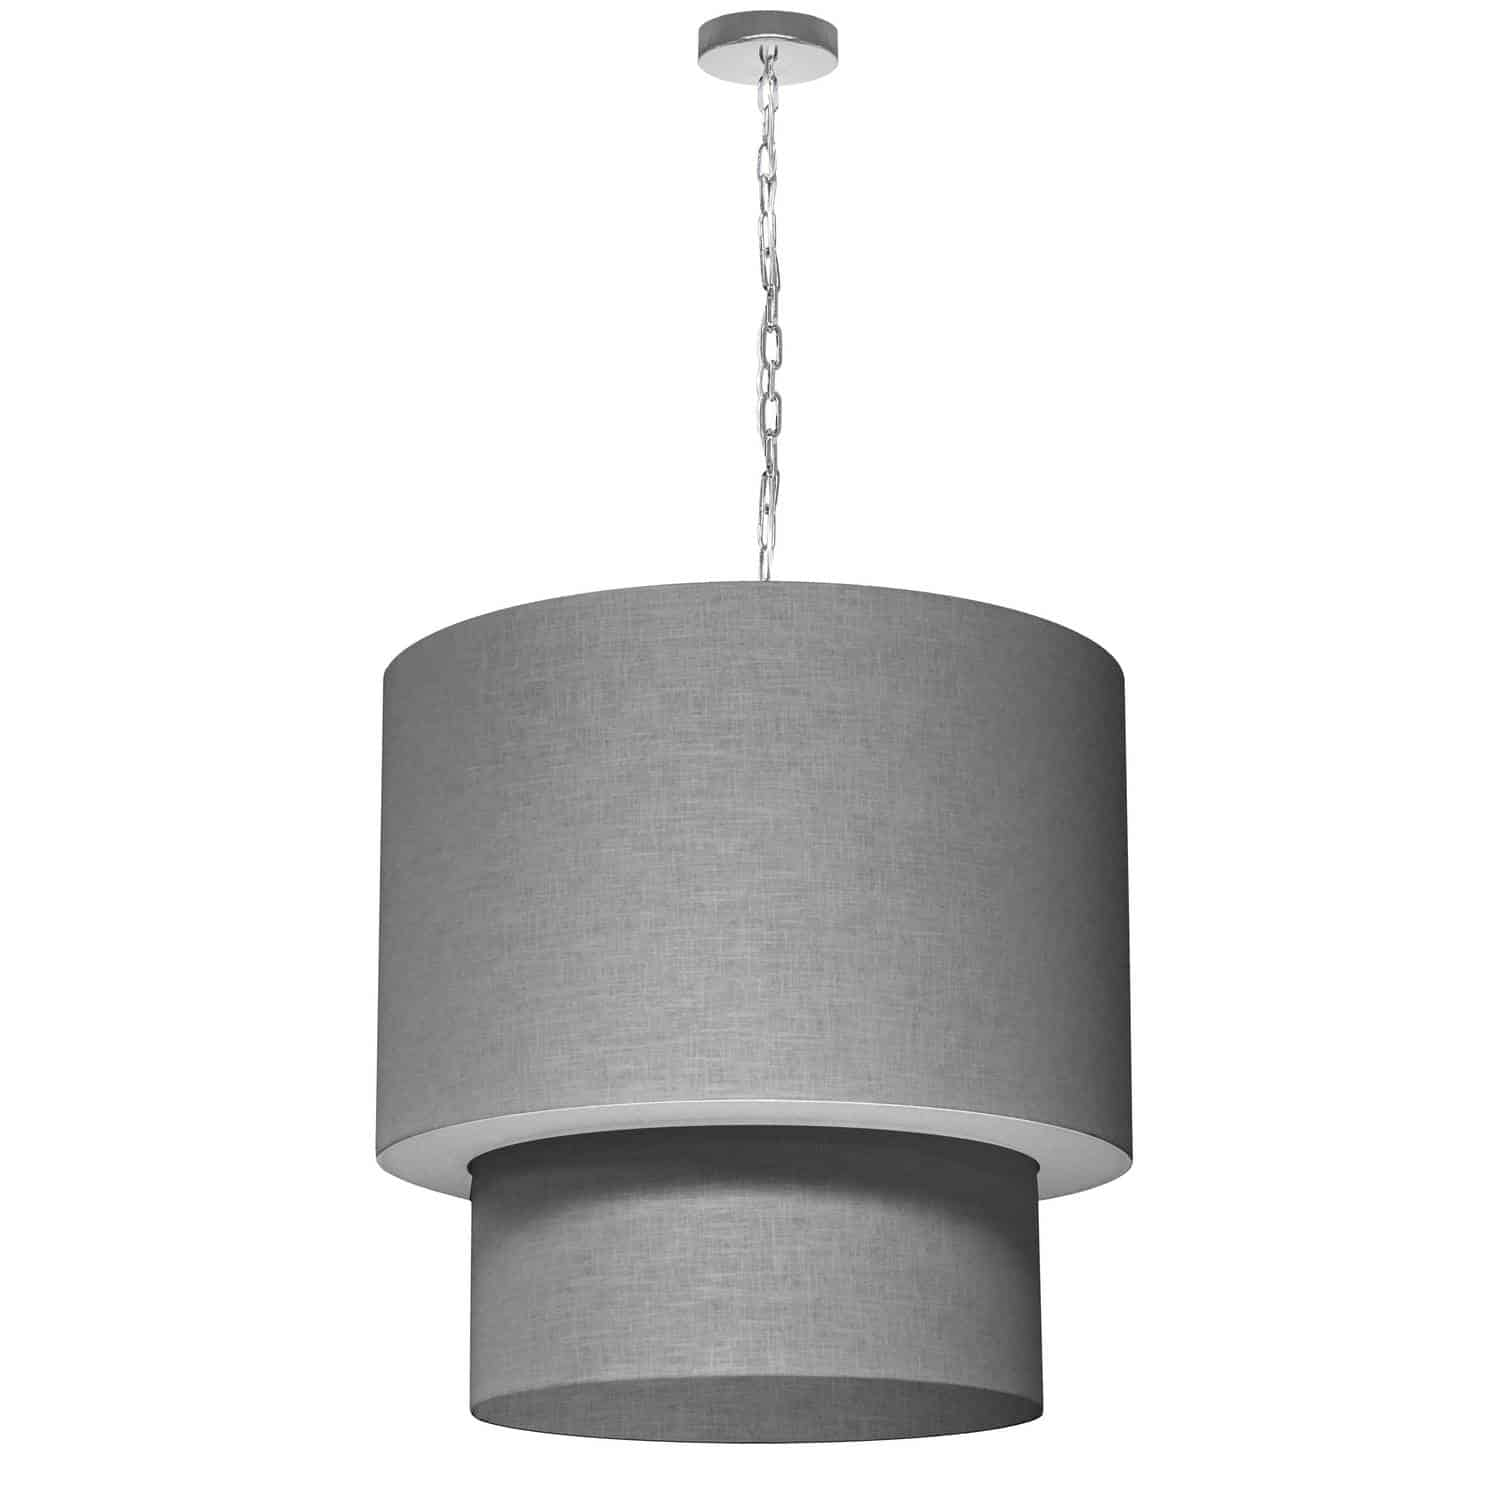 5 Light 3 Tiers Drum Linen Milano Grey, Acrylic Diffuser, Polished Chrome